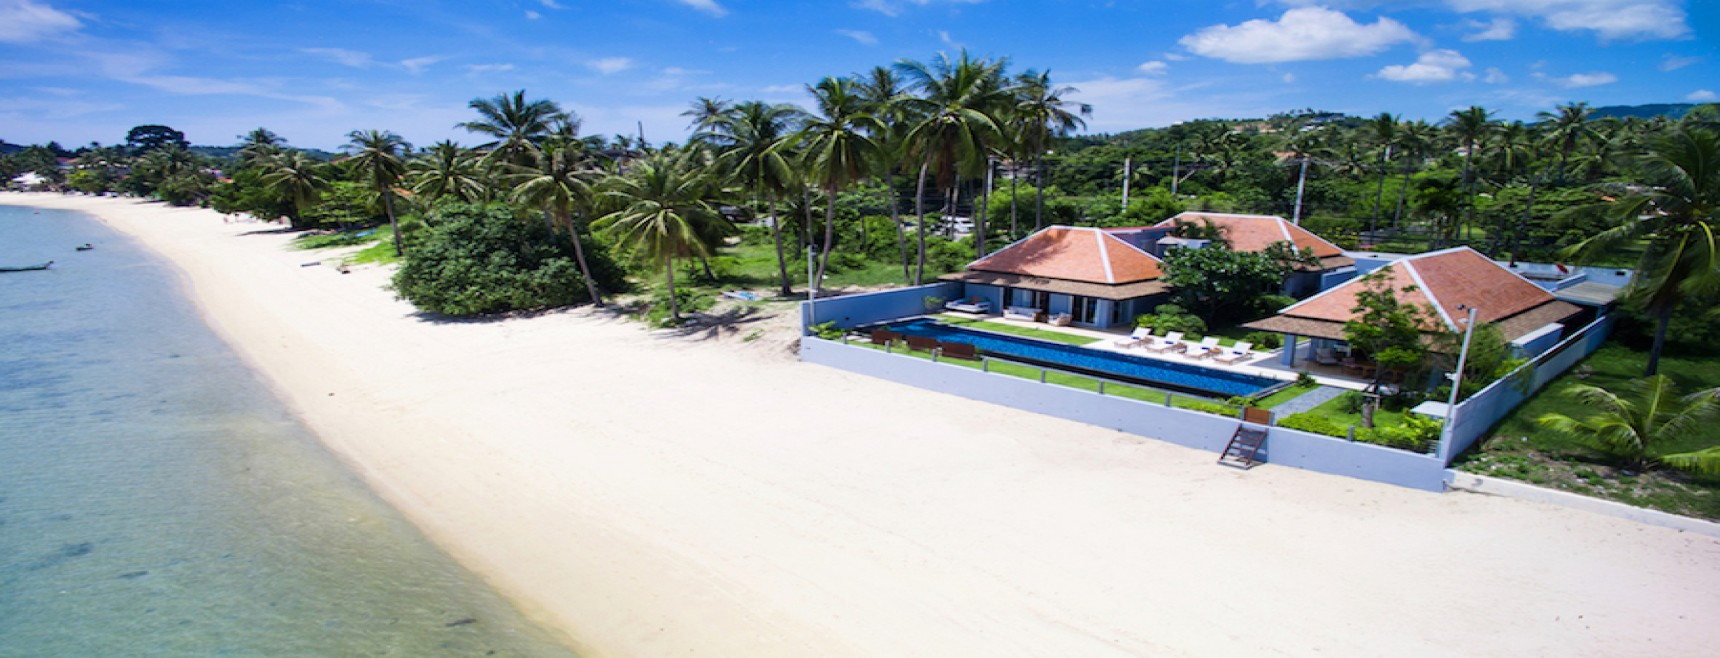 4 Bedrooms, Villa, Residential Sales, 4 Bathrooms, Listing ID 1484, Bangrak, North East, Koh Samui,